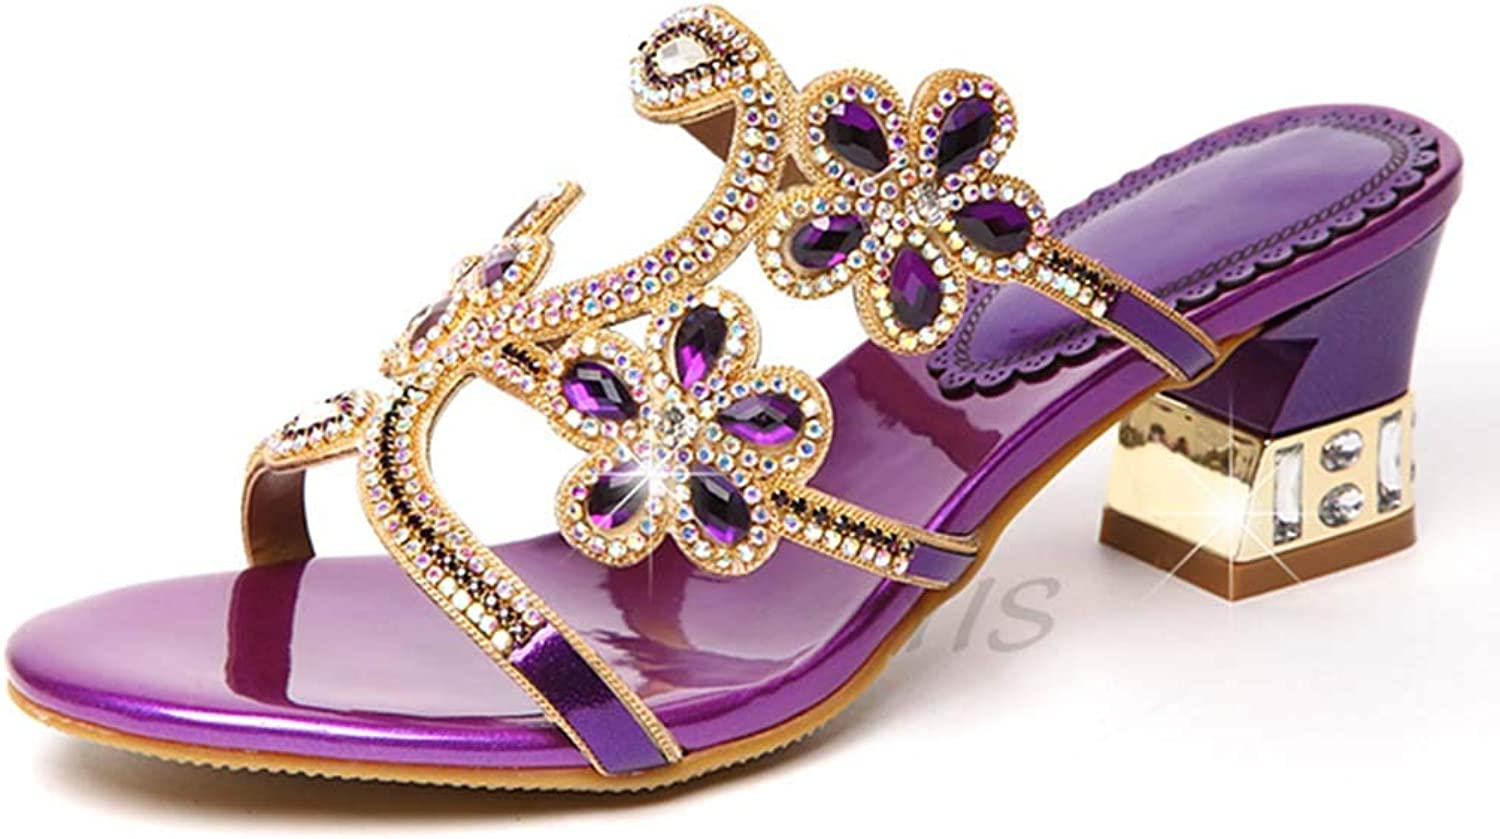 Women's Slippers Rhinestone Leather High-Heeled Sandals Non-Slip Thick with Crystal Fashion wear a Word Slippers Summer New